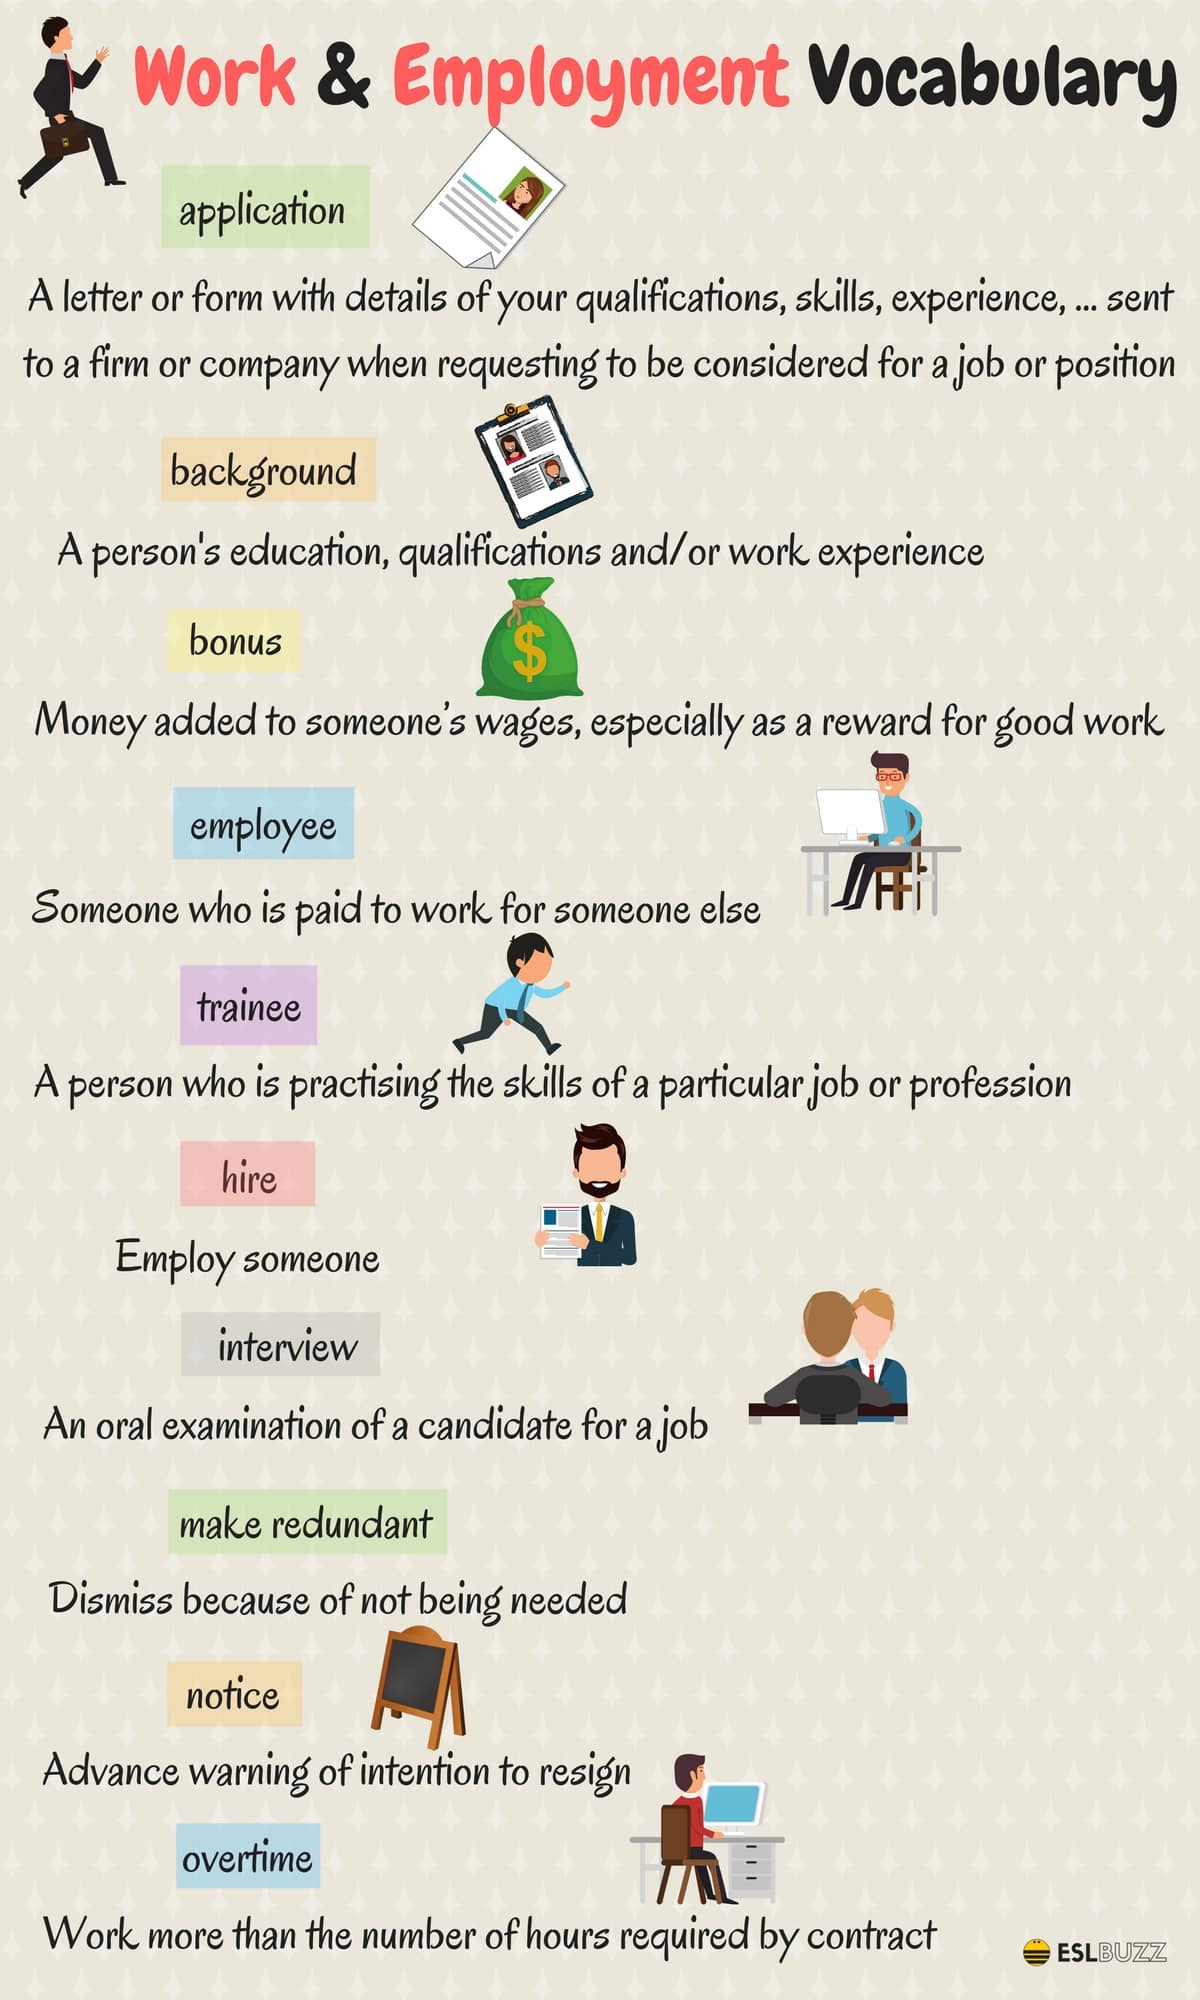 35 Useful English Words And Expressions About Work And